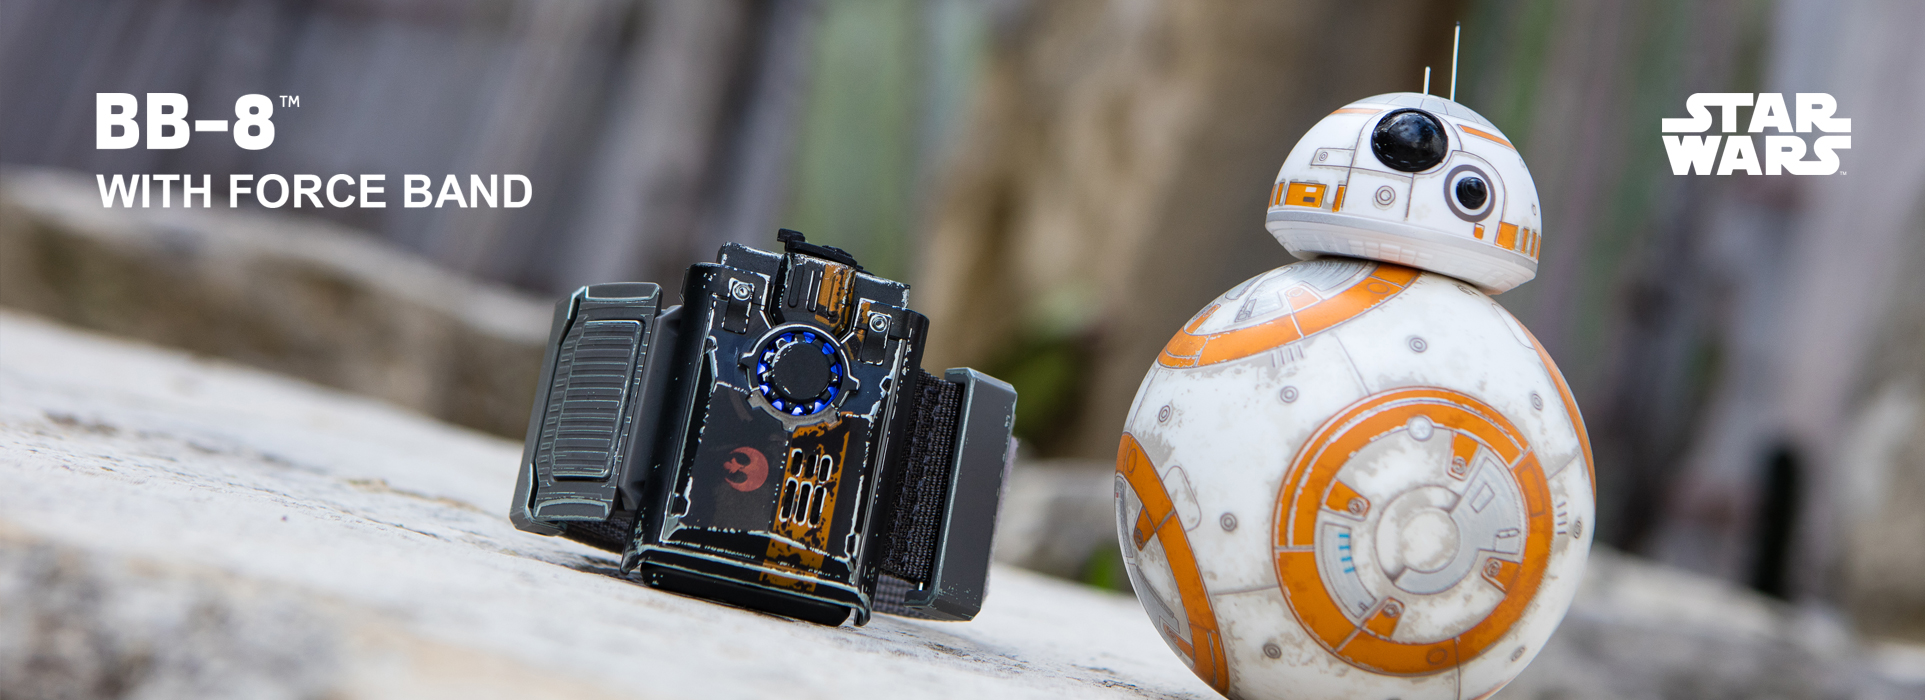 BB-8™ with Force Band